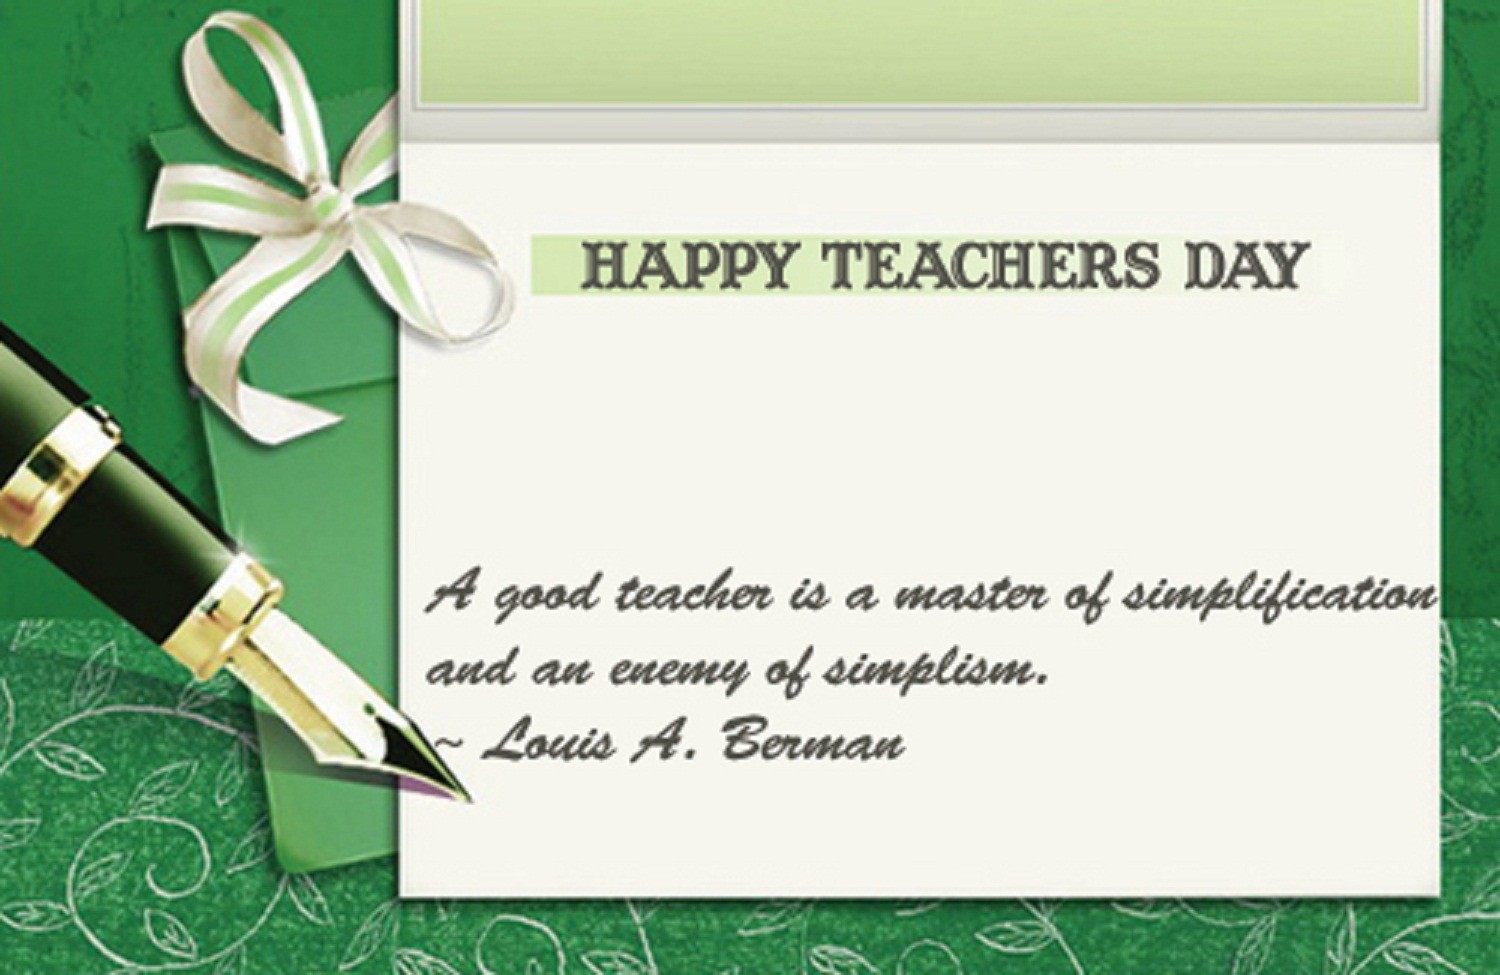 Teachers Day Images for Whatsapp DP Wallpapers